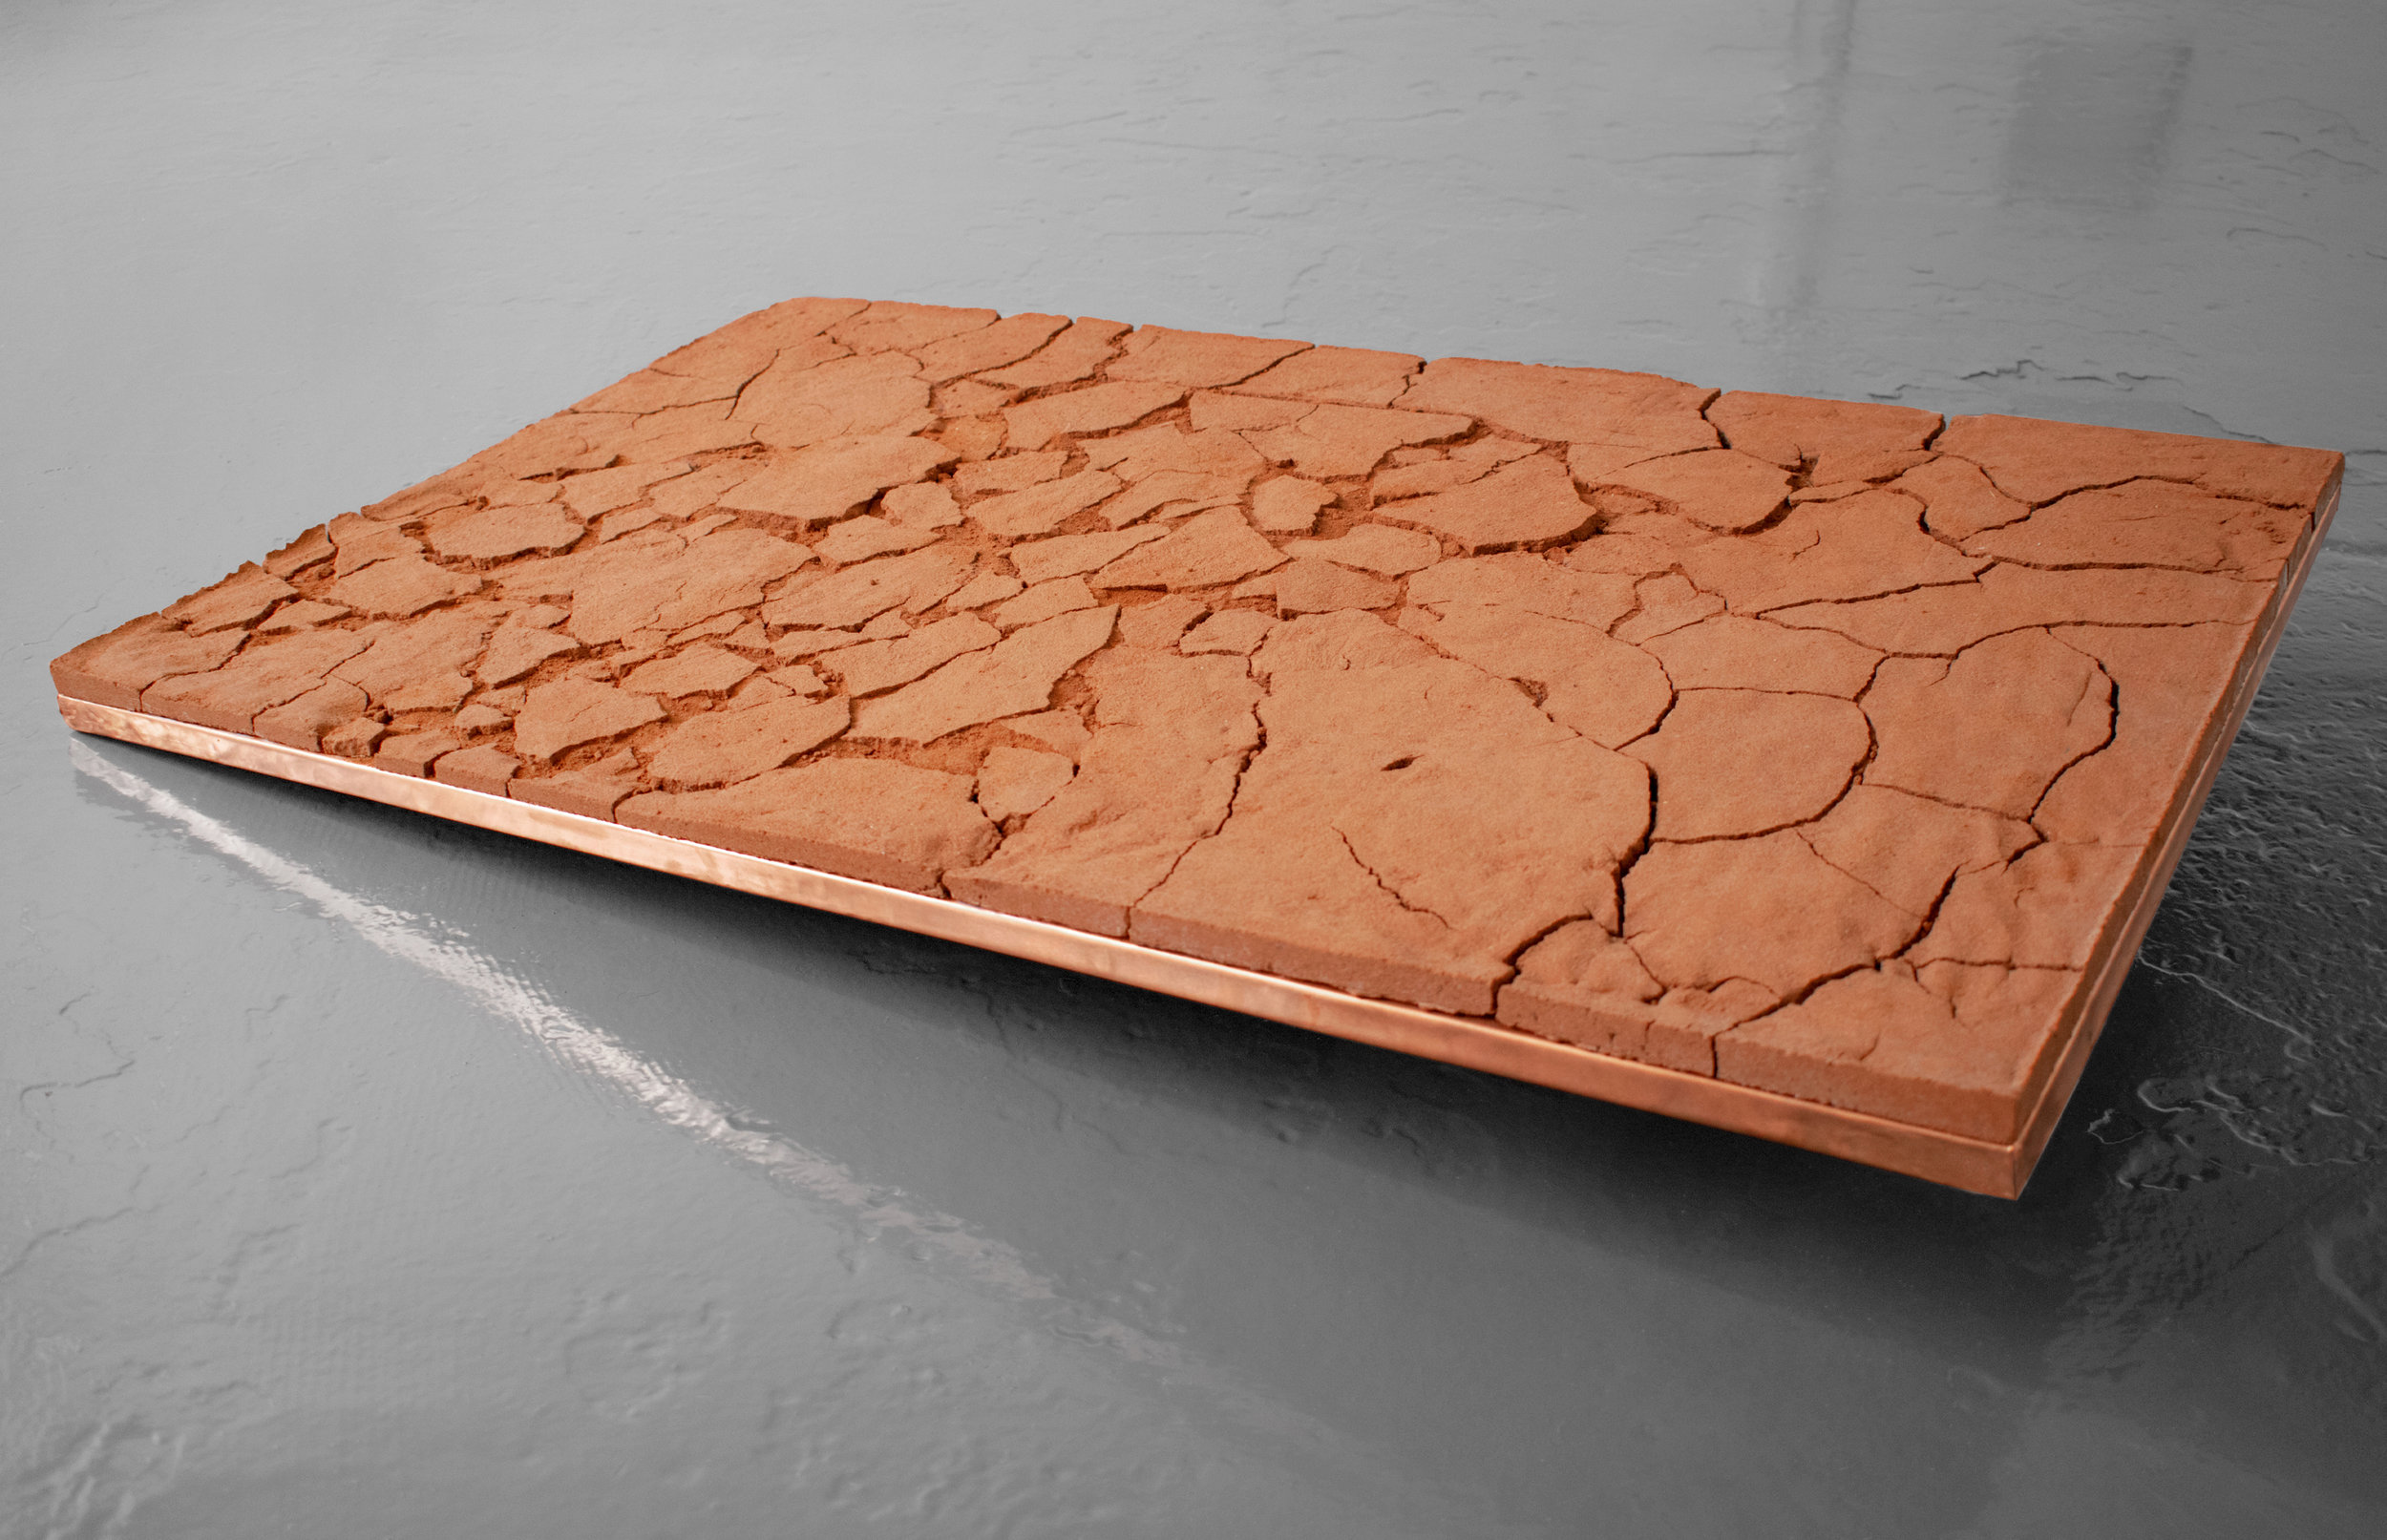 The Land Upon which we used to Lay  Casting sand on copper and ply. 53,5 x 89 cm. 2019